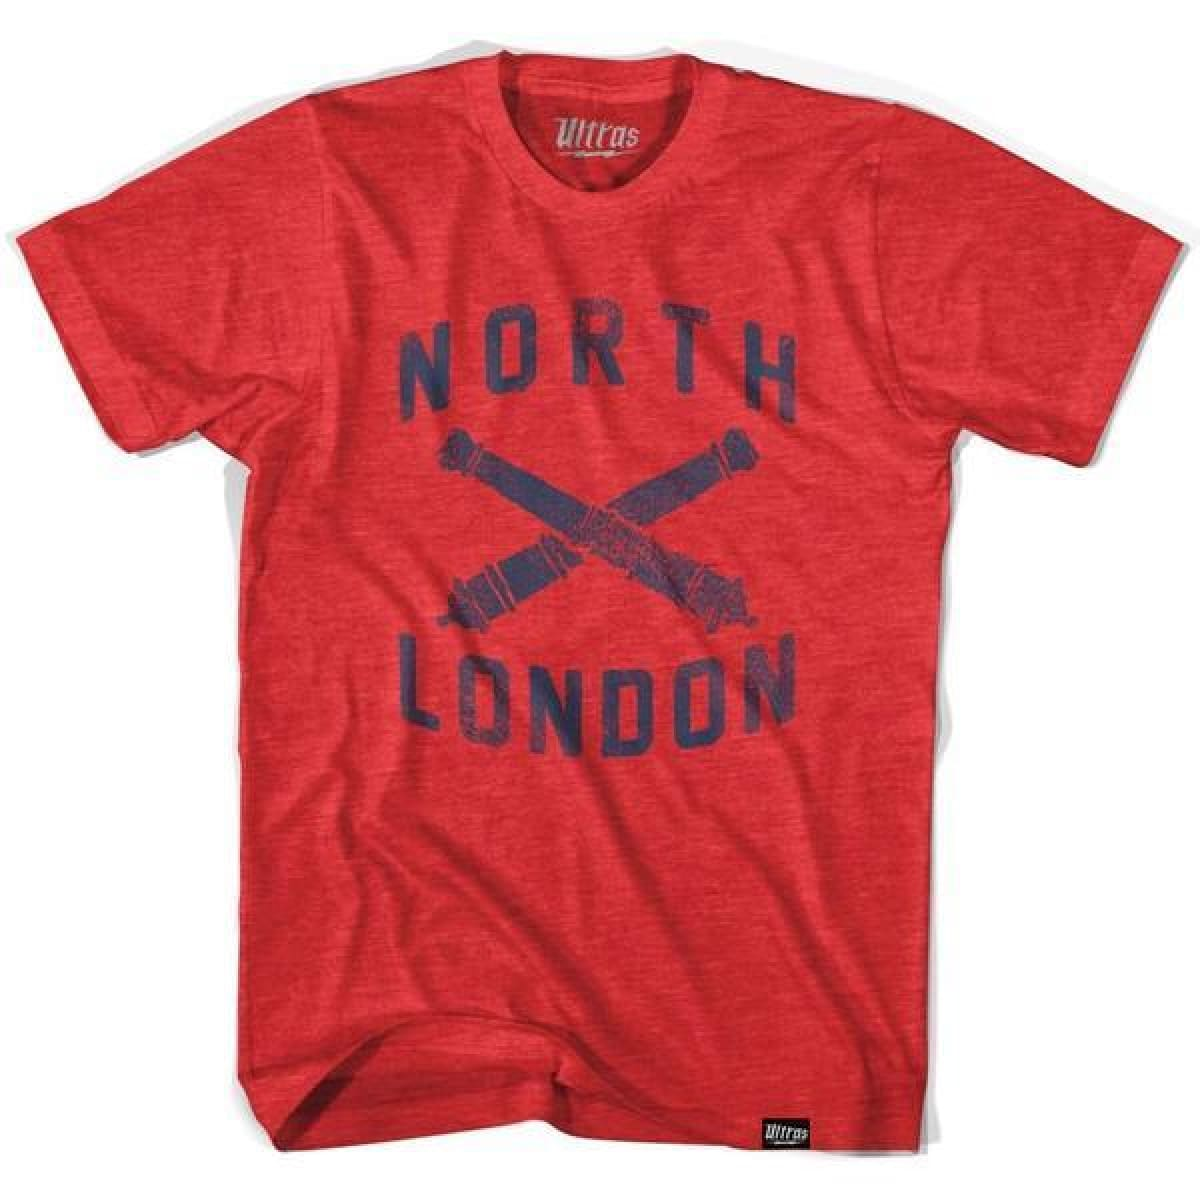 Arsenal North London T-shirt - Ultras Club Soccer T-shirt